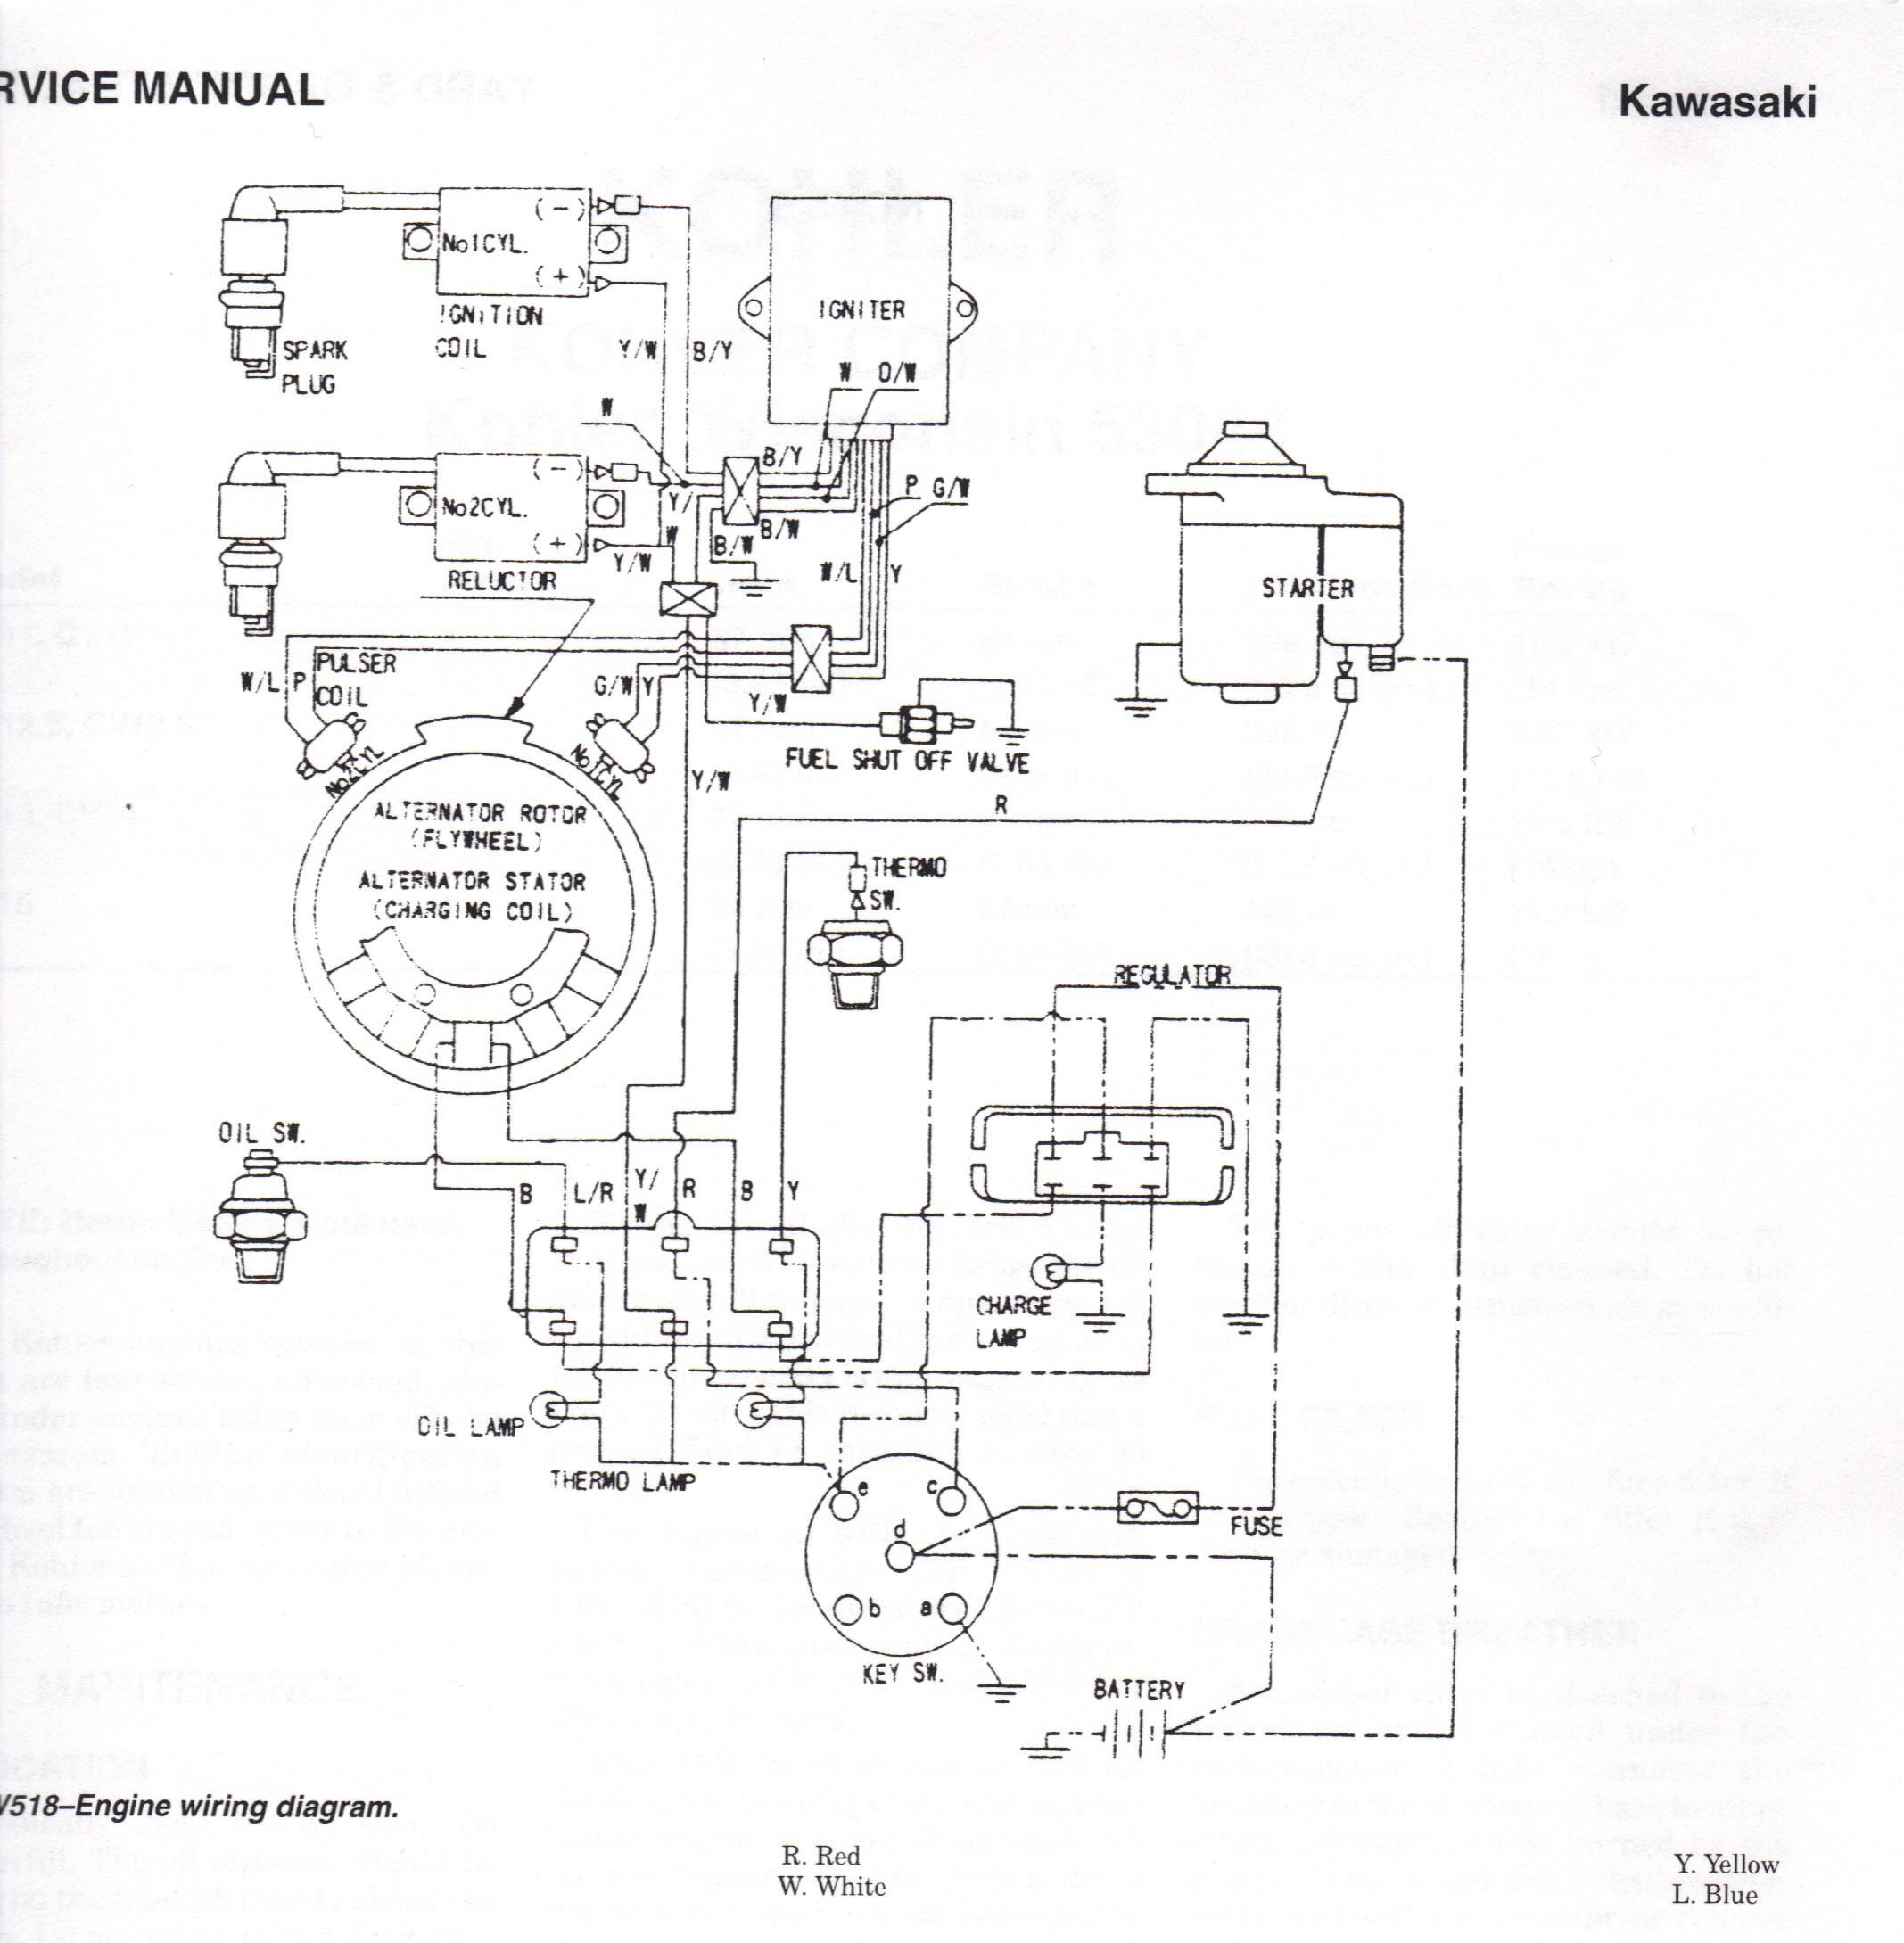 John Deere 332 Alternator Wiring Diagram Library. John Deere 332 Alternator Wiring Diagram. John Deere. John Deere 332 Diagram At Scoala.co